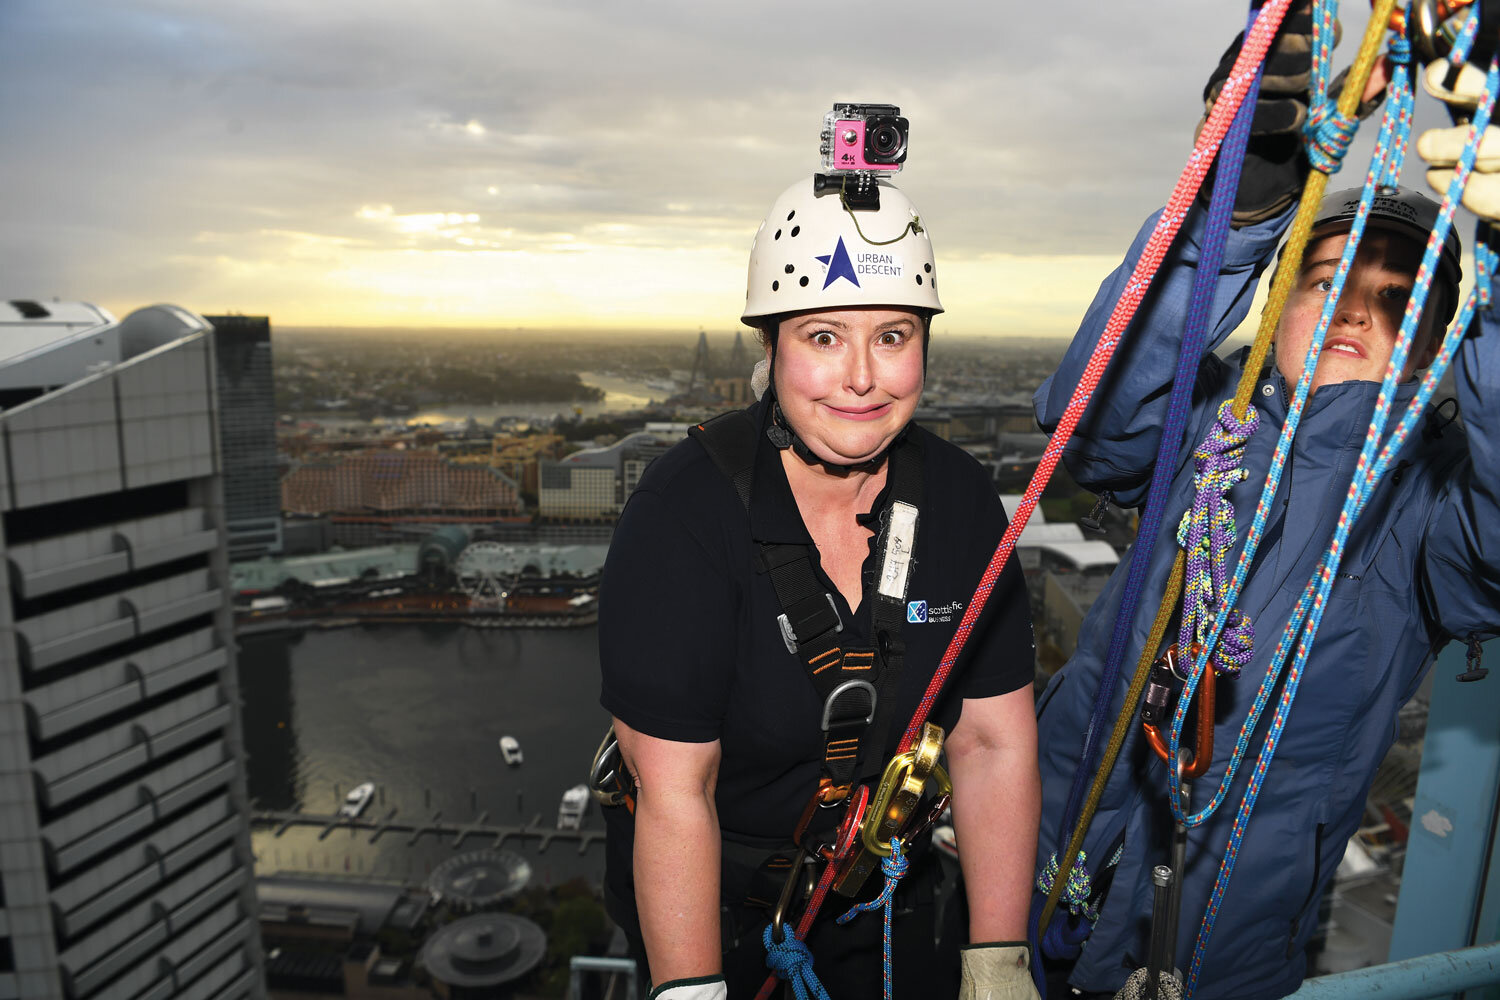 The Abseil for Youth event has raised more than $2.6 million in its nine year history.